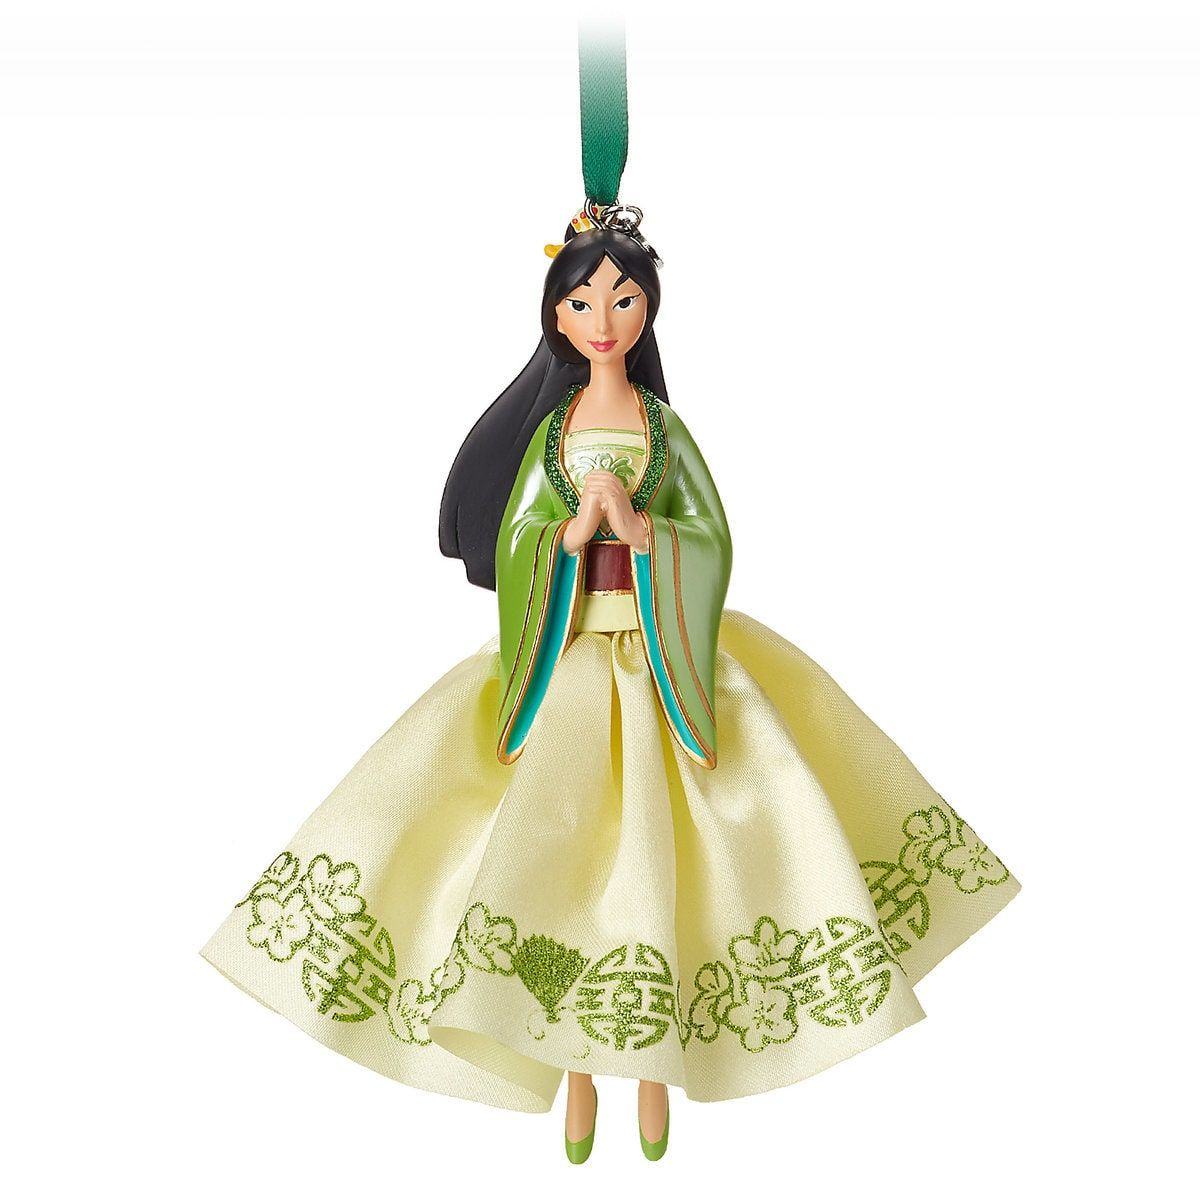 Snoopy Christmas Tree Topper: Product Image Of Mulan Sketchbook Ornament # 1